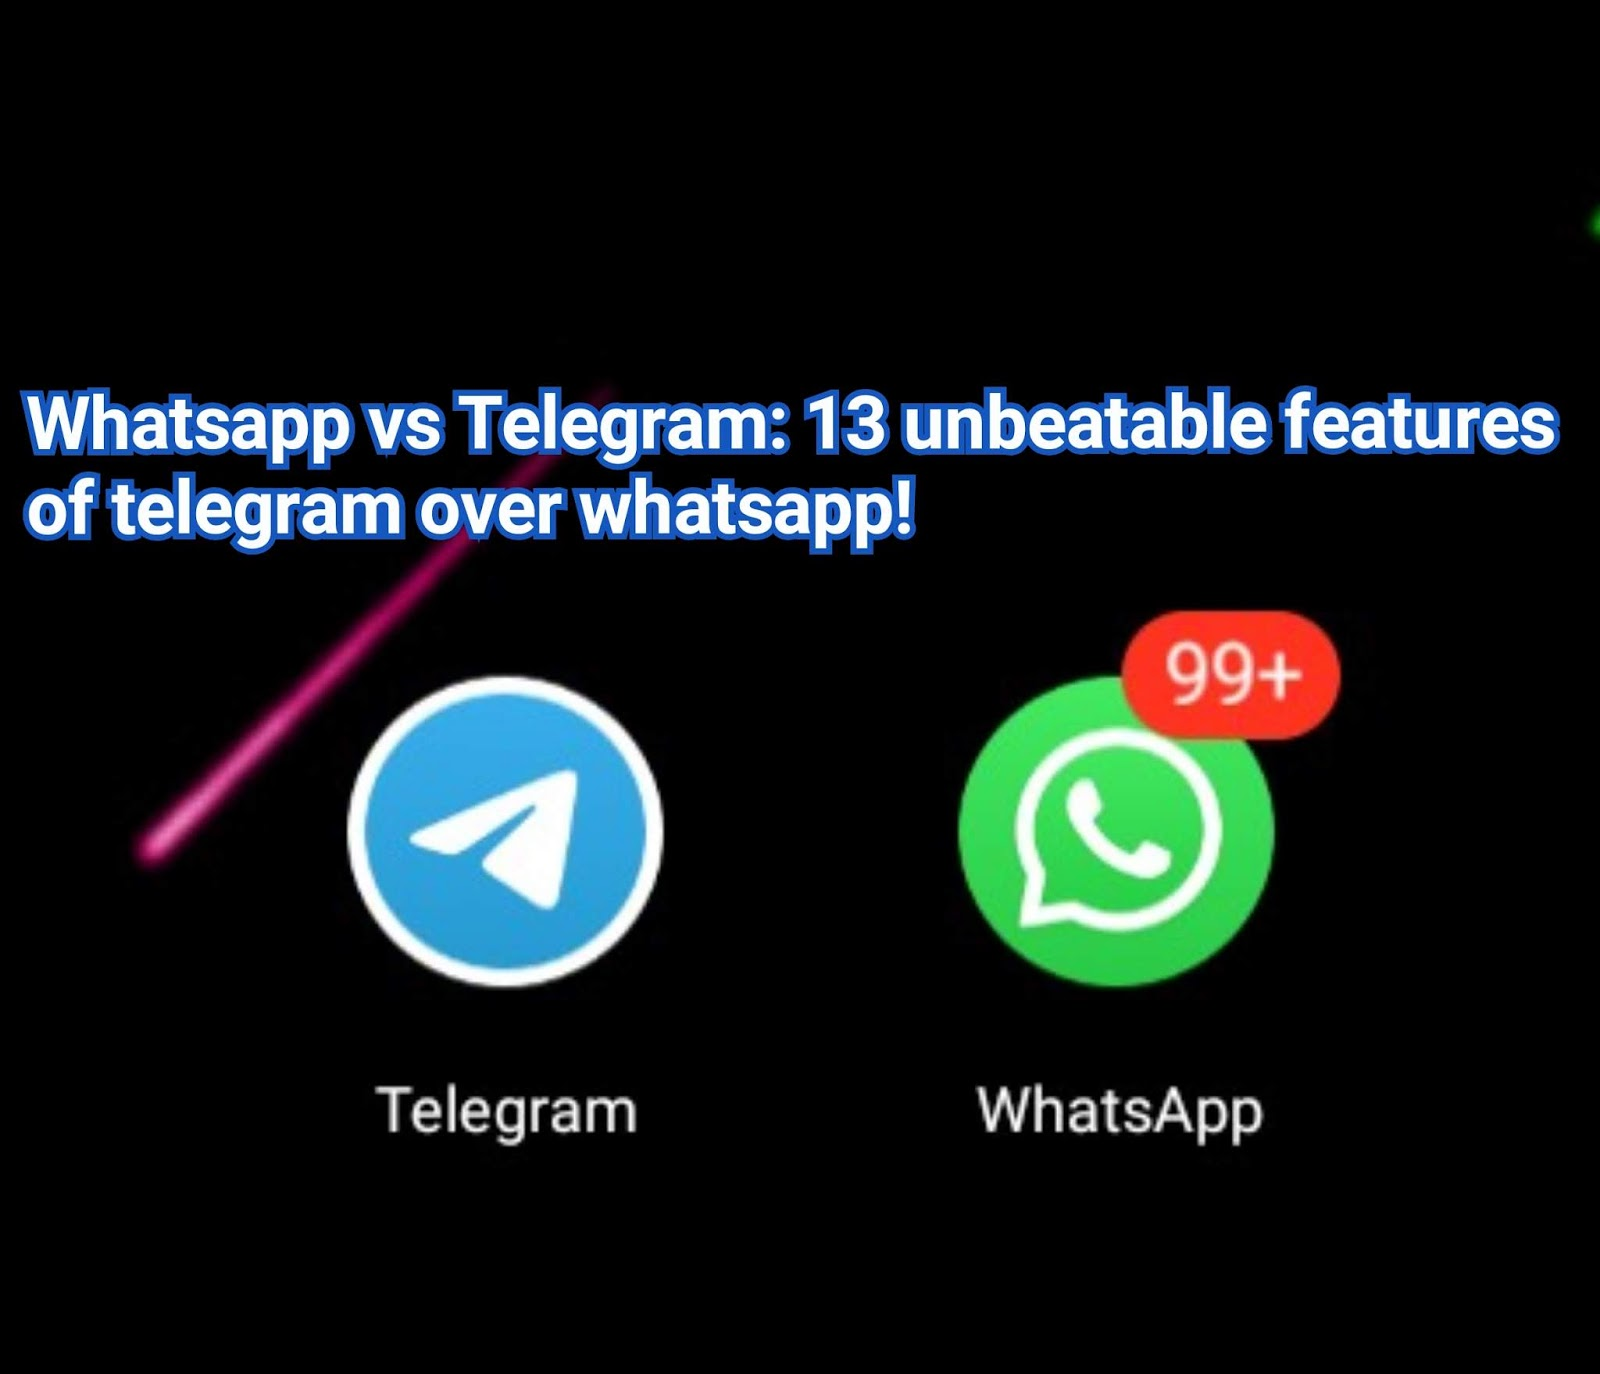 Dropping whatsapp to use telegram, here are 13 amazing features to expect on telegram